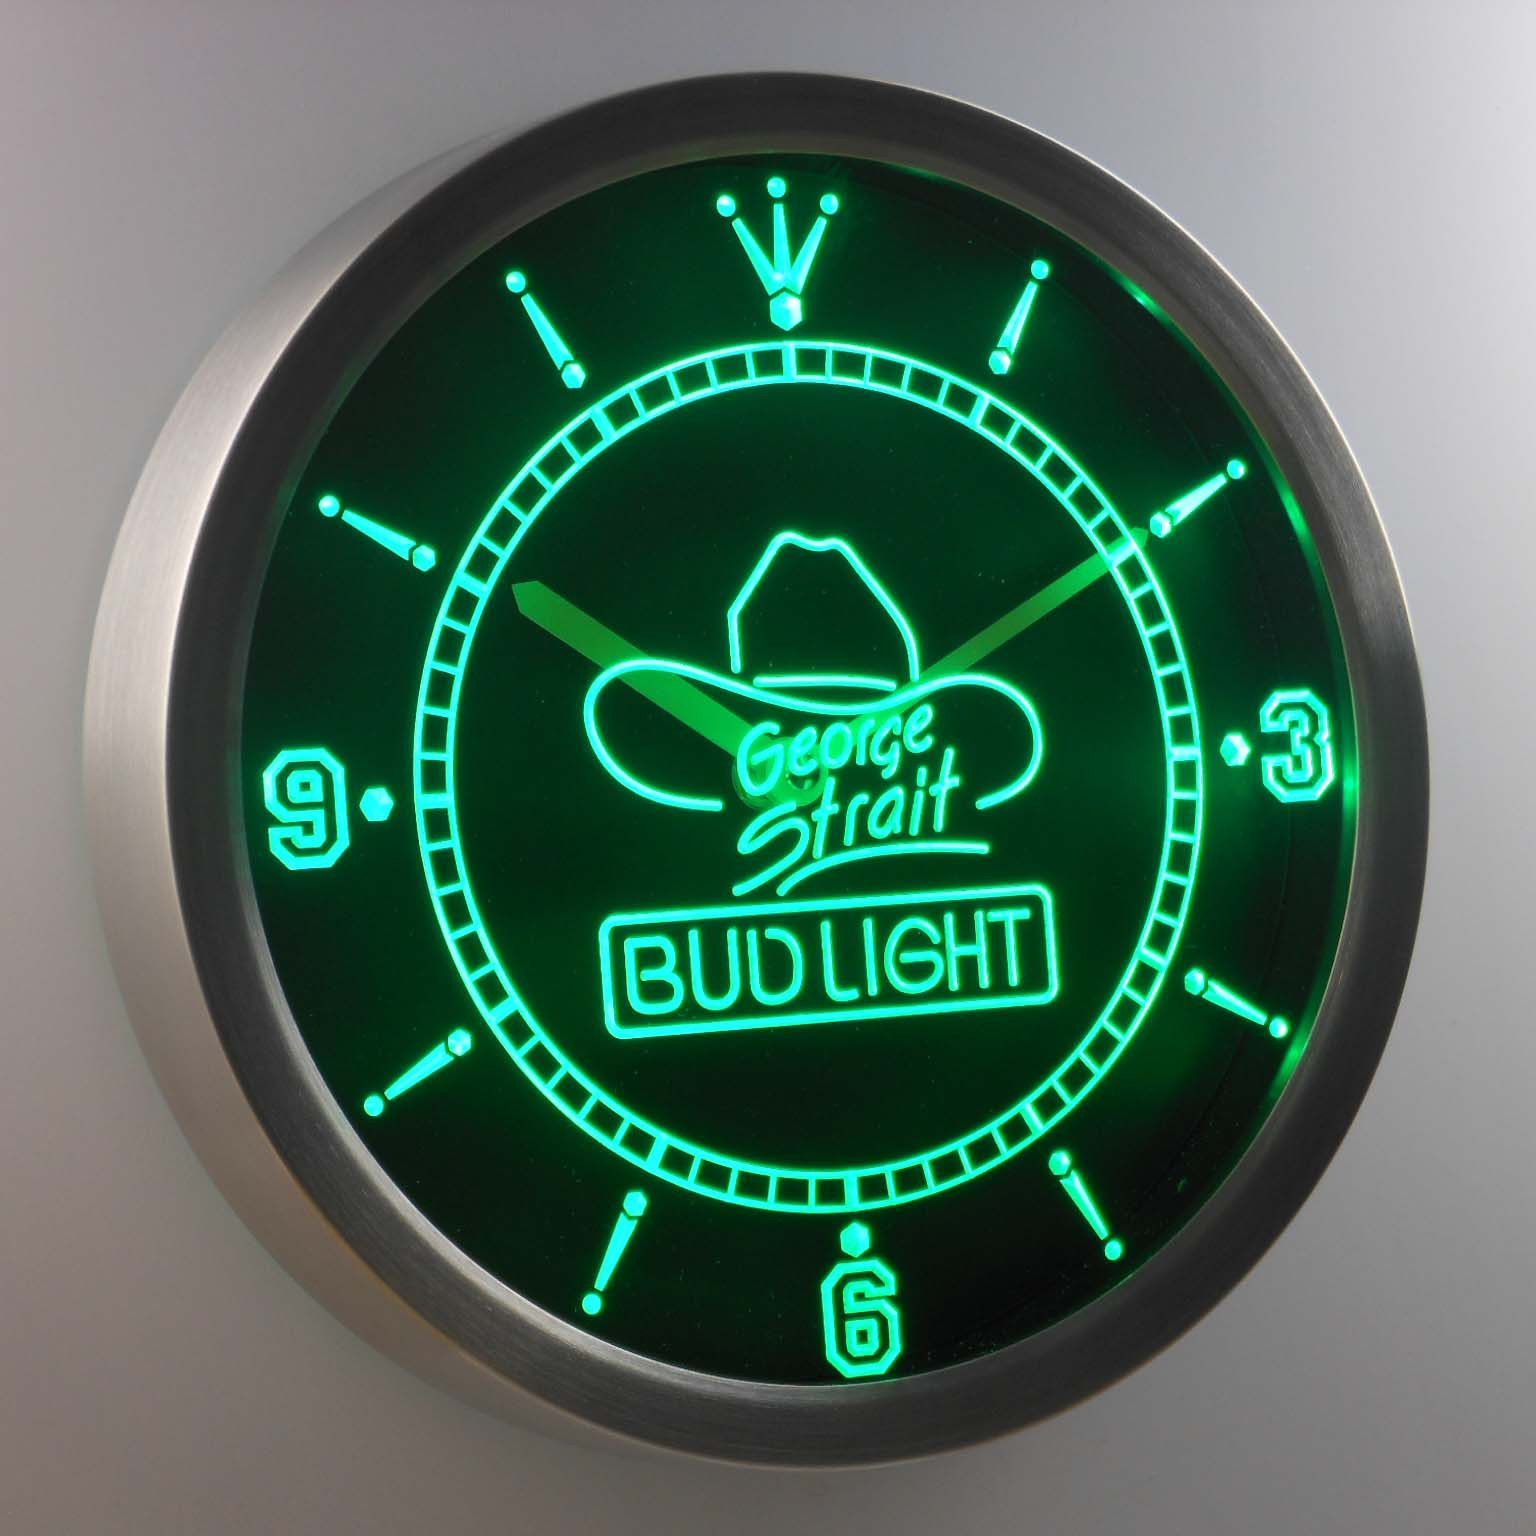 Bud Light Strait LED Neon Wall Clock Led wall